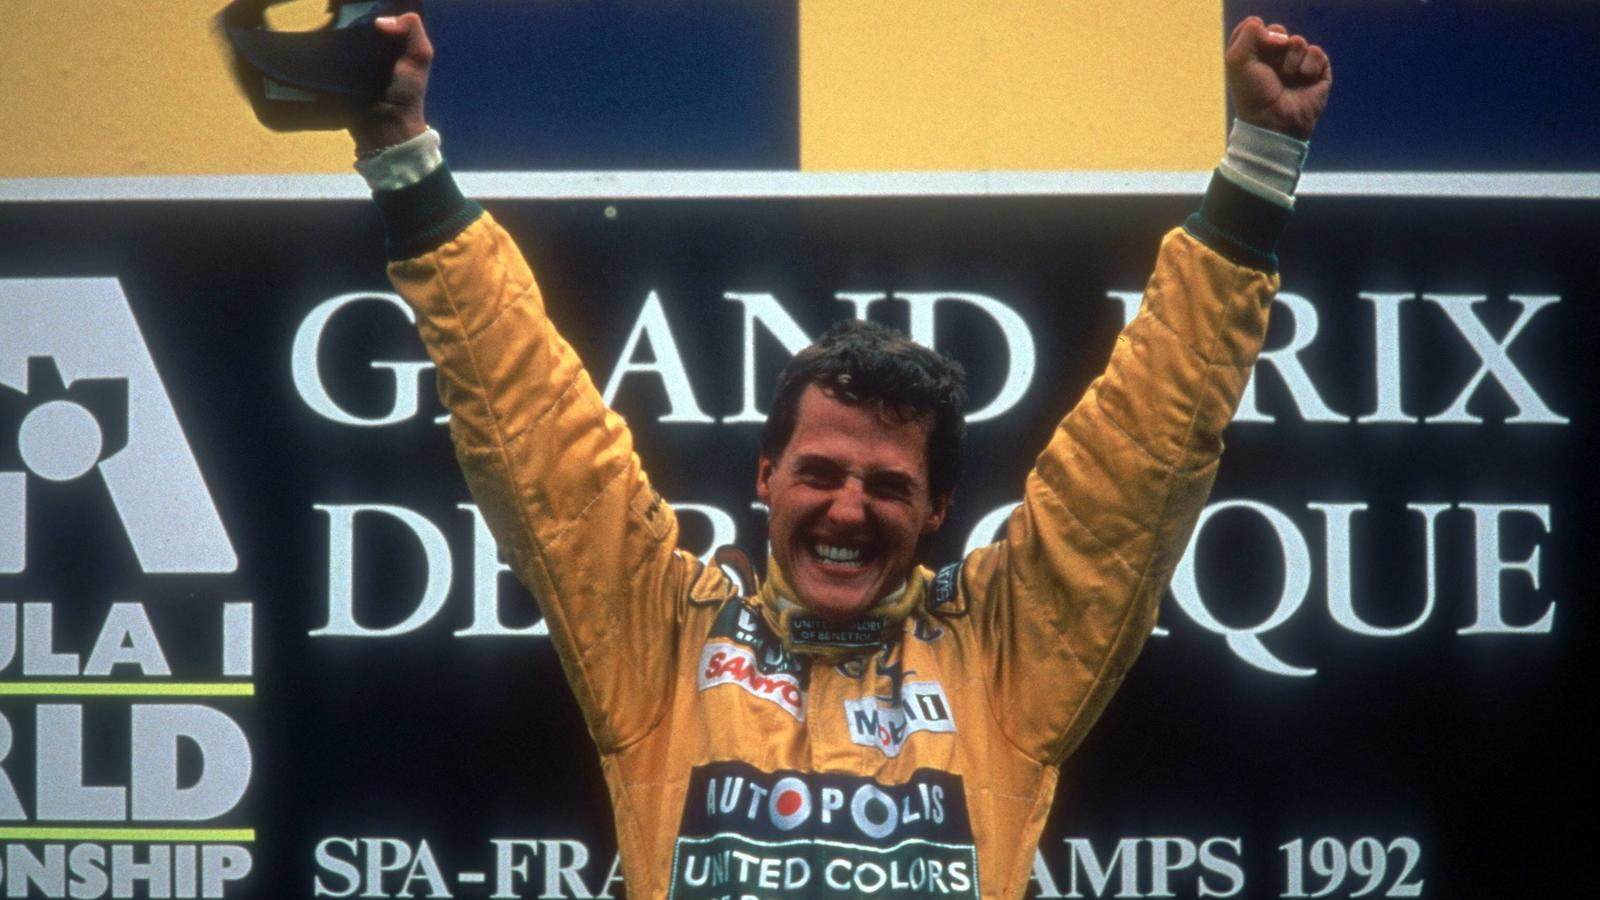 Michael Schumacher (Deutschland / Benetton Ford) bejubelt seinen ersten Formel 1 Sieg beim GP von Belgien 1992Michael Schumacher Germany Benetton Ford cheered his first Formula 1 Victory the GP from Belgium 1992